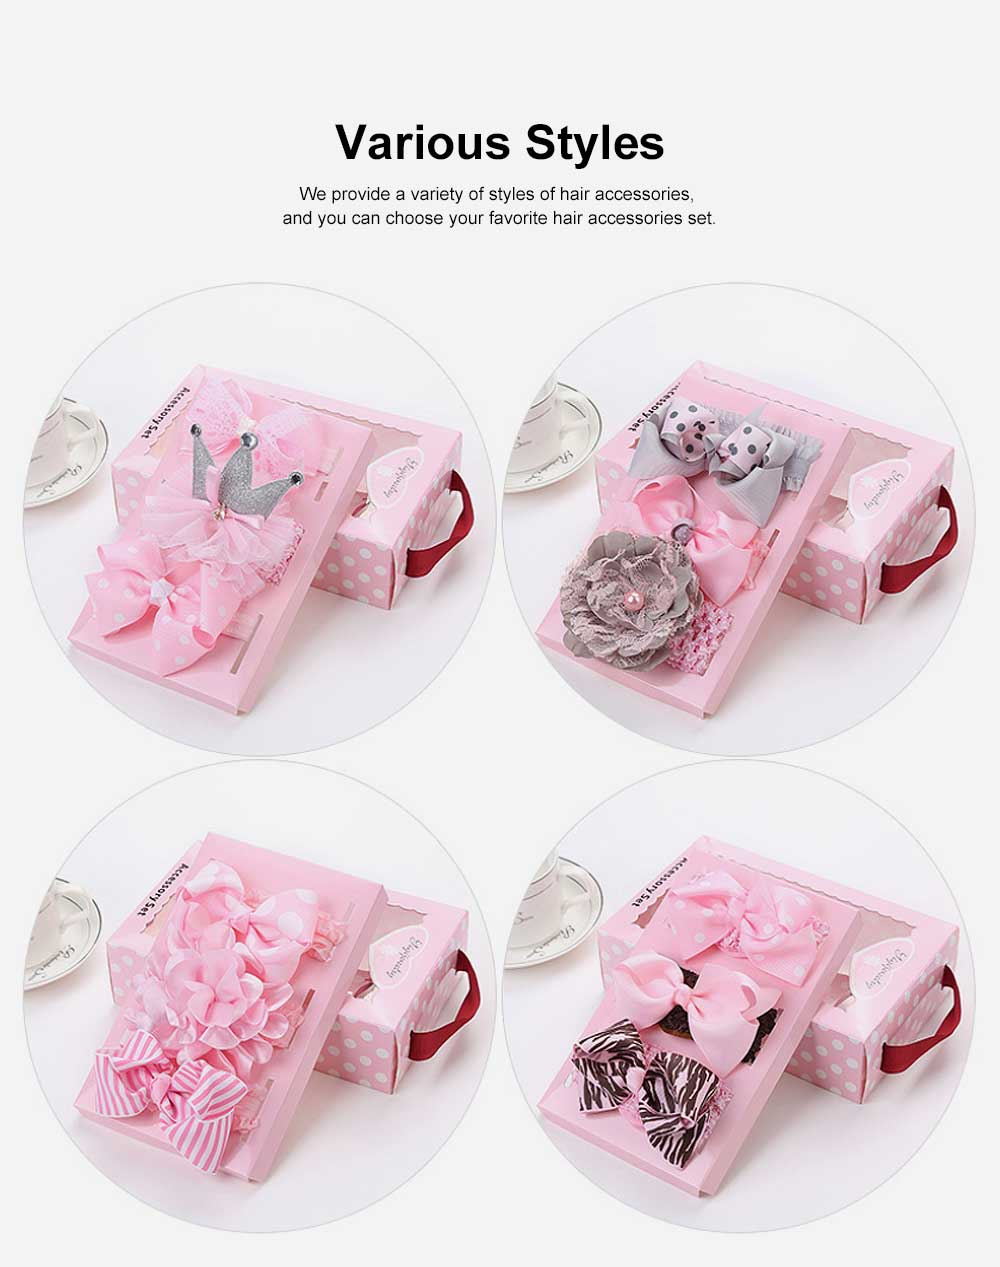 Children's Hair Band Gift Set Crown Fashion Exquisite Elasticity Bowknot Headdress Flower Hair Accessories Set 1